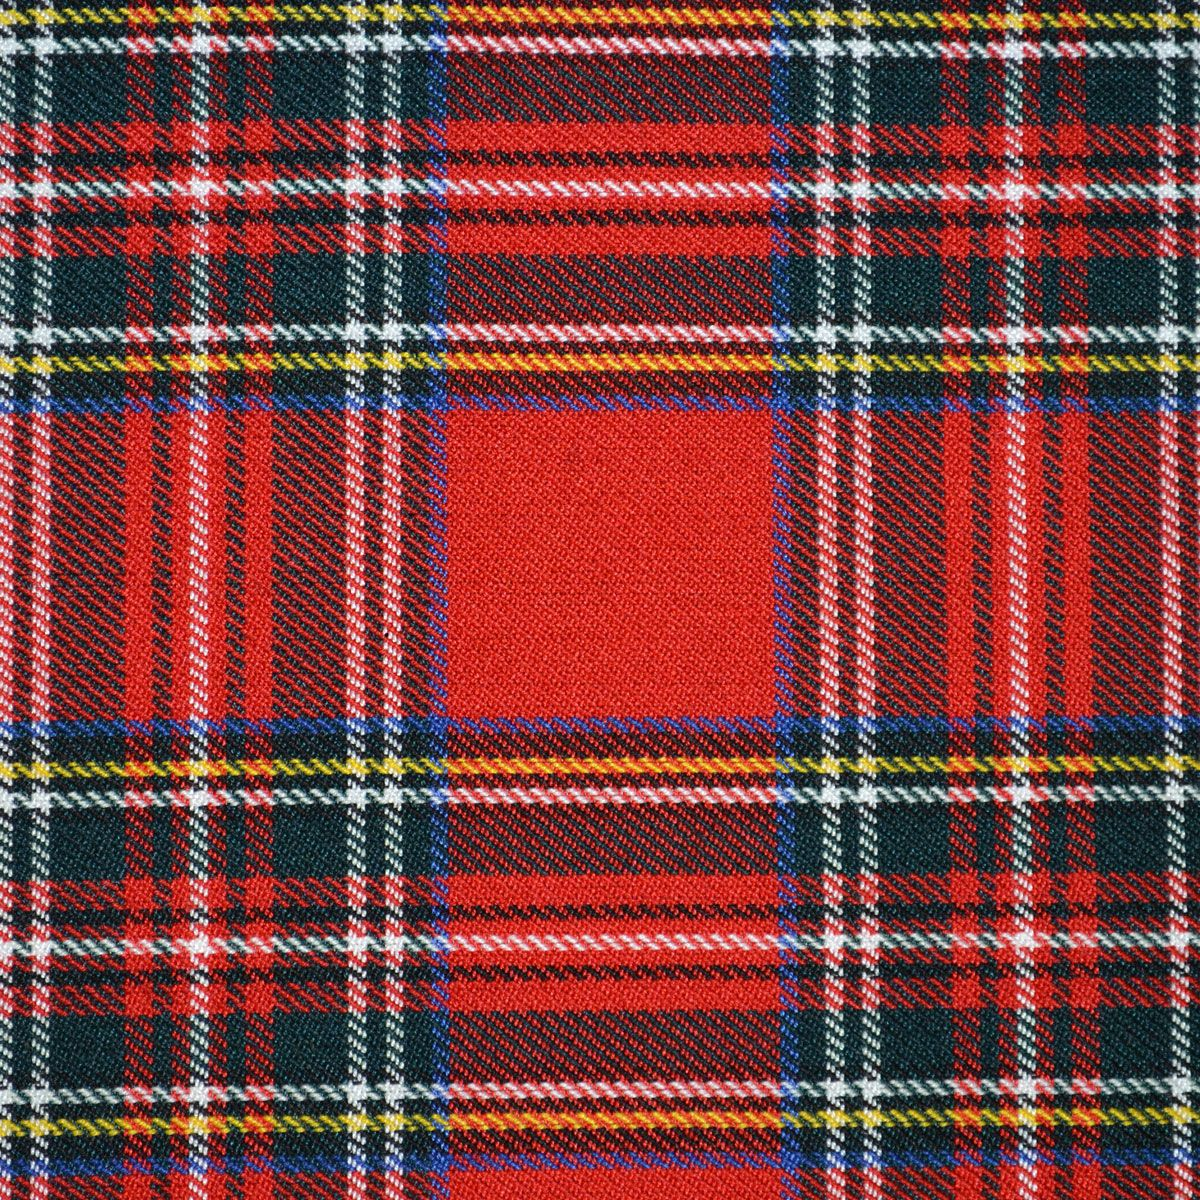 Tarton fabric royal stewart tartan fabric world fabric for Cloth world fabrics